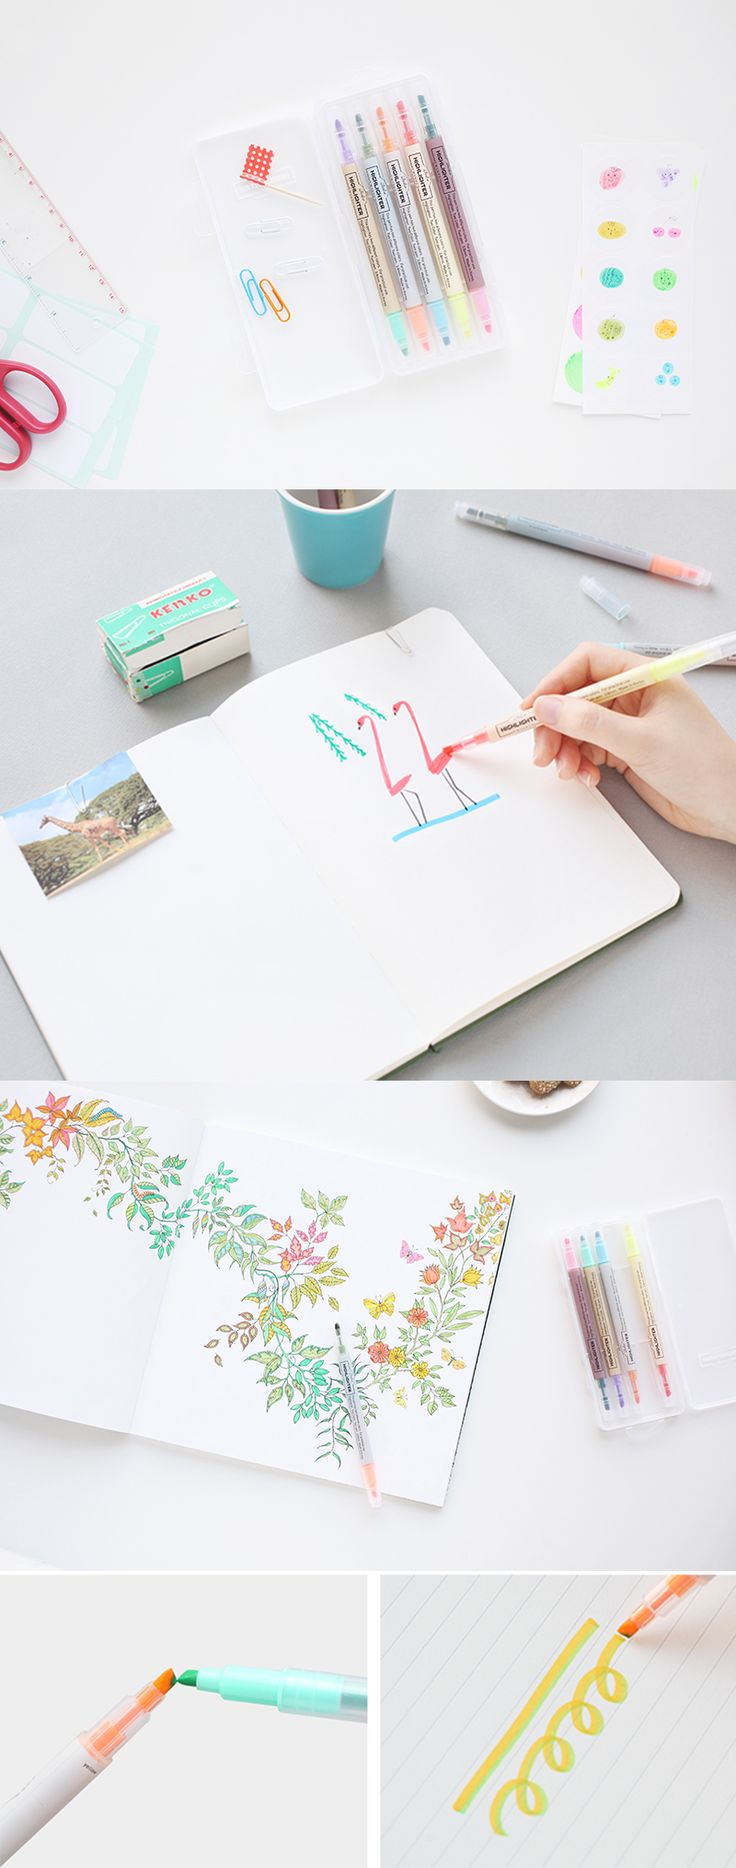 5 pens, 10 colors. Color your life with the Twin Highlighter Pen Set!